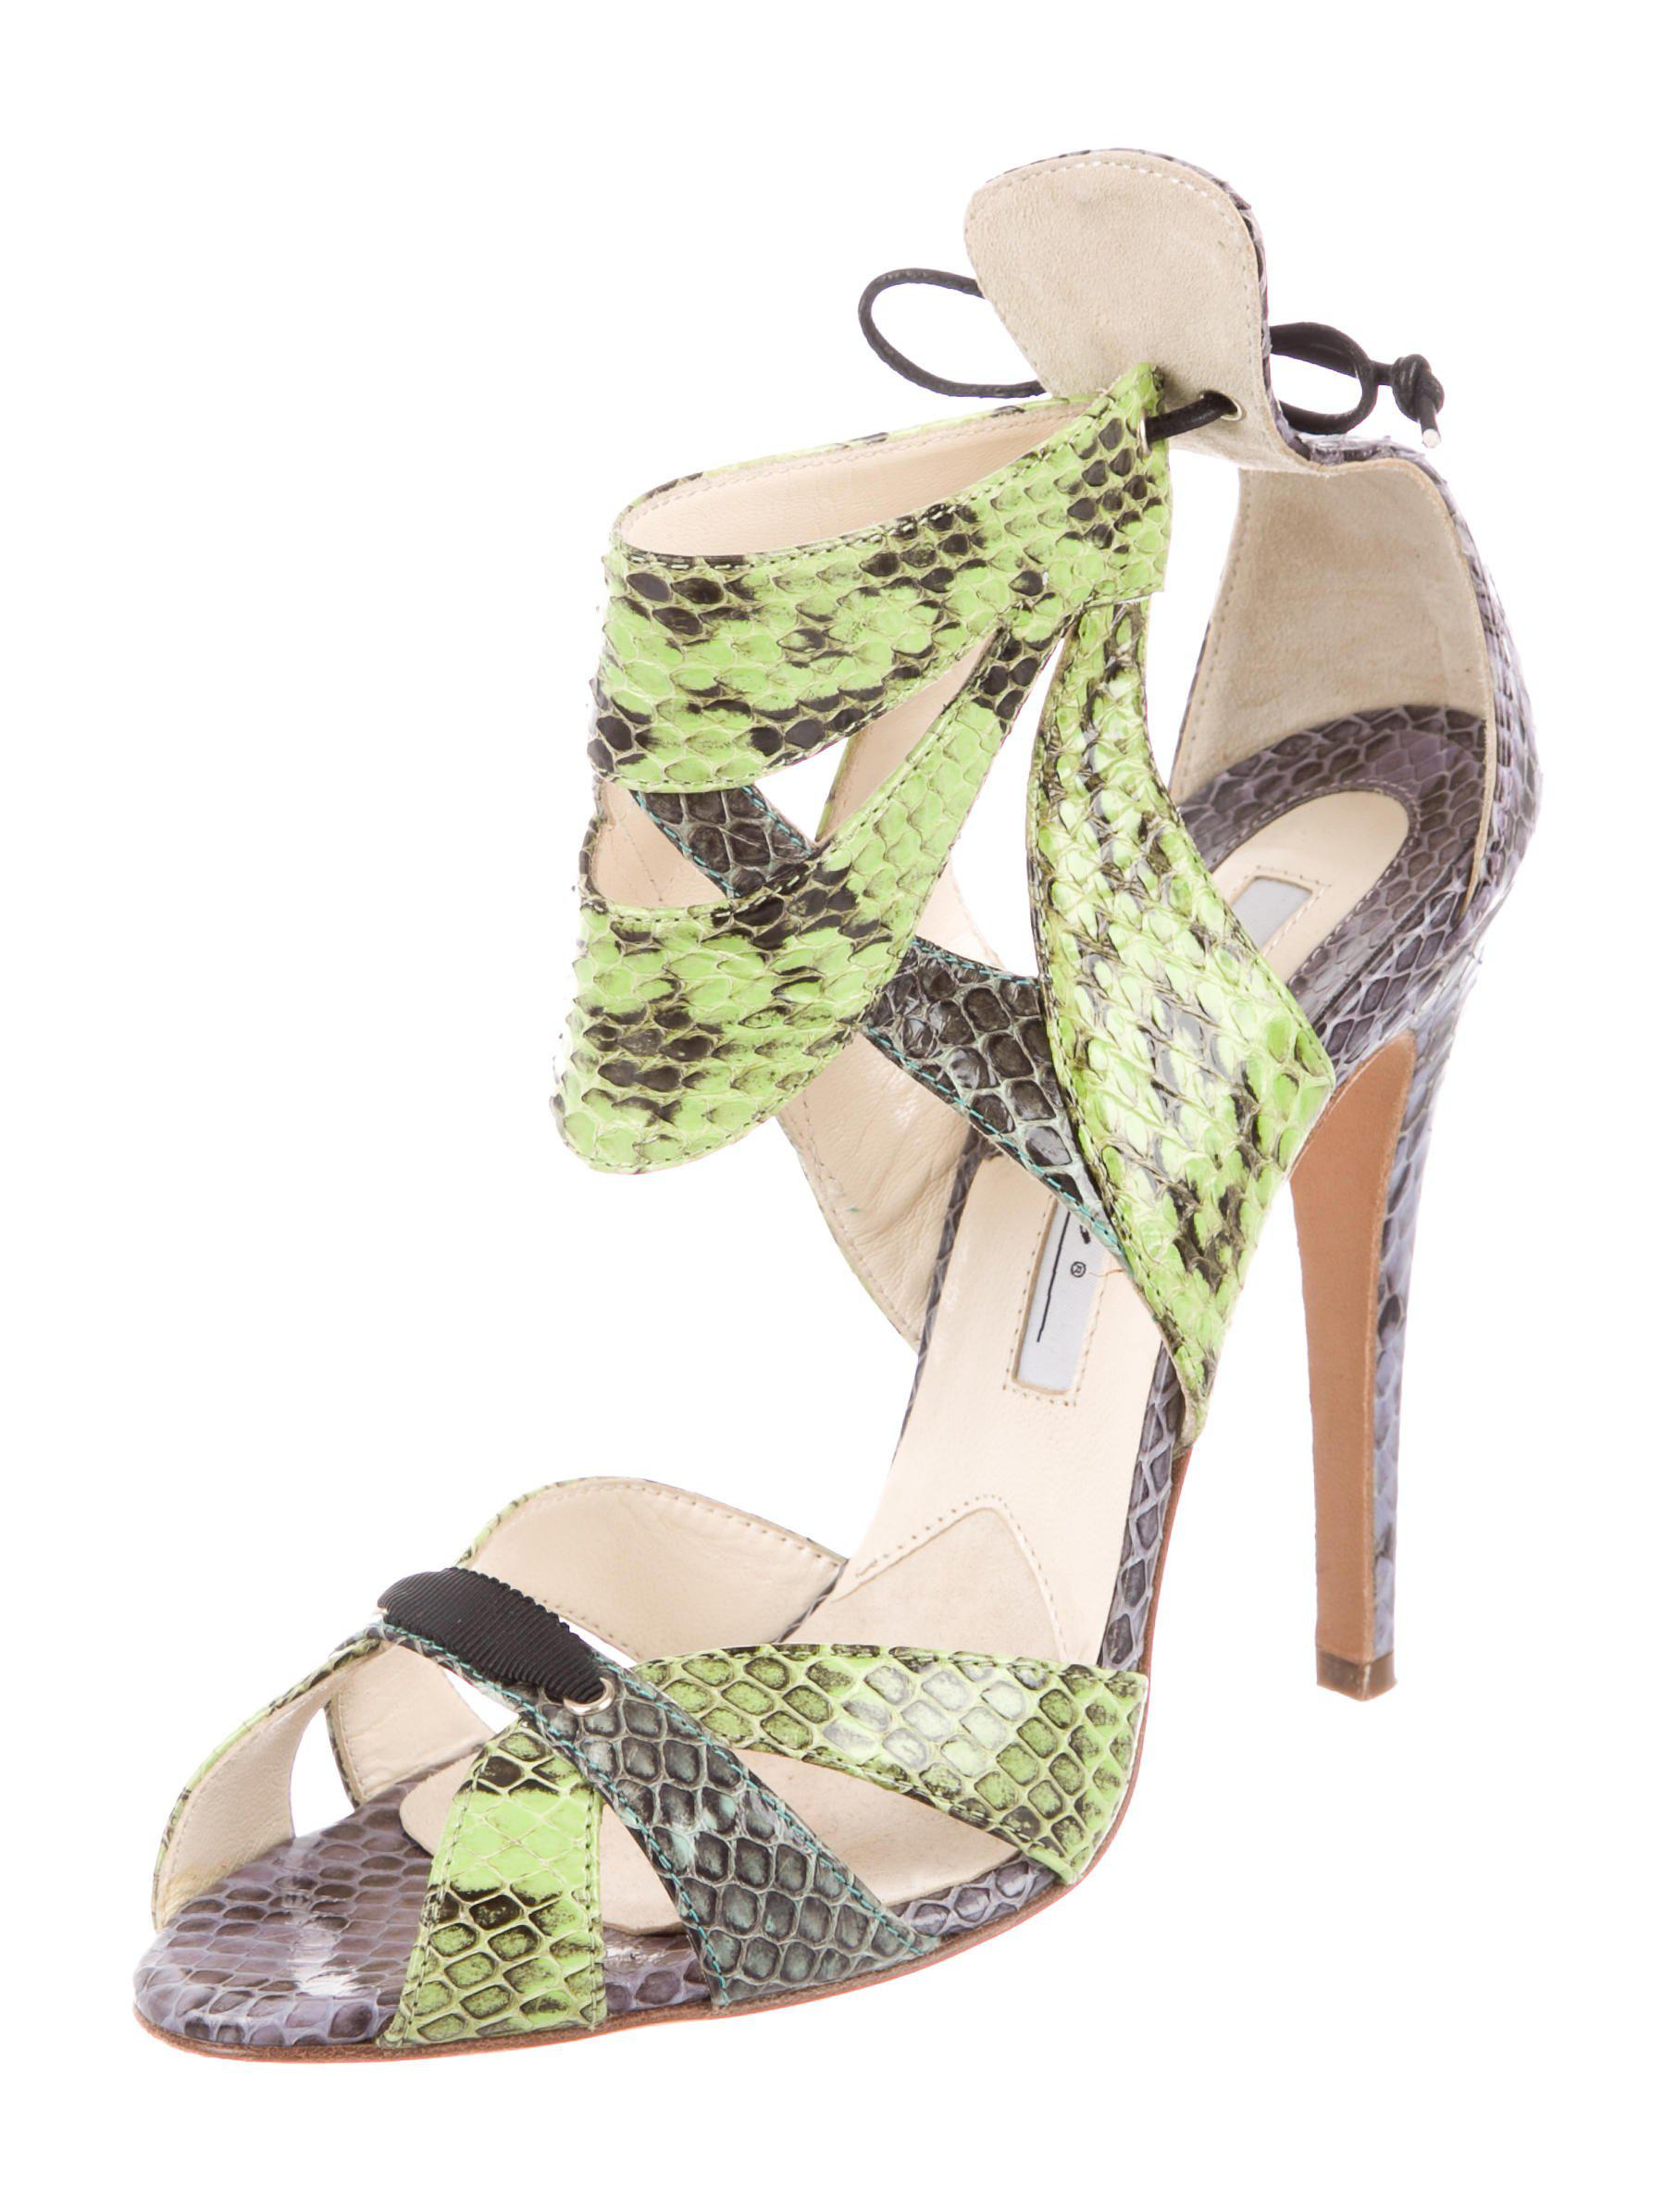 Brian Atwood Snakeskin Cutout Sandals sale footaction low cost for sale 66eJFA2